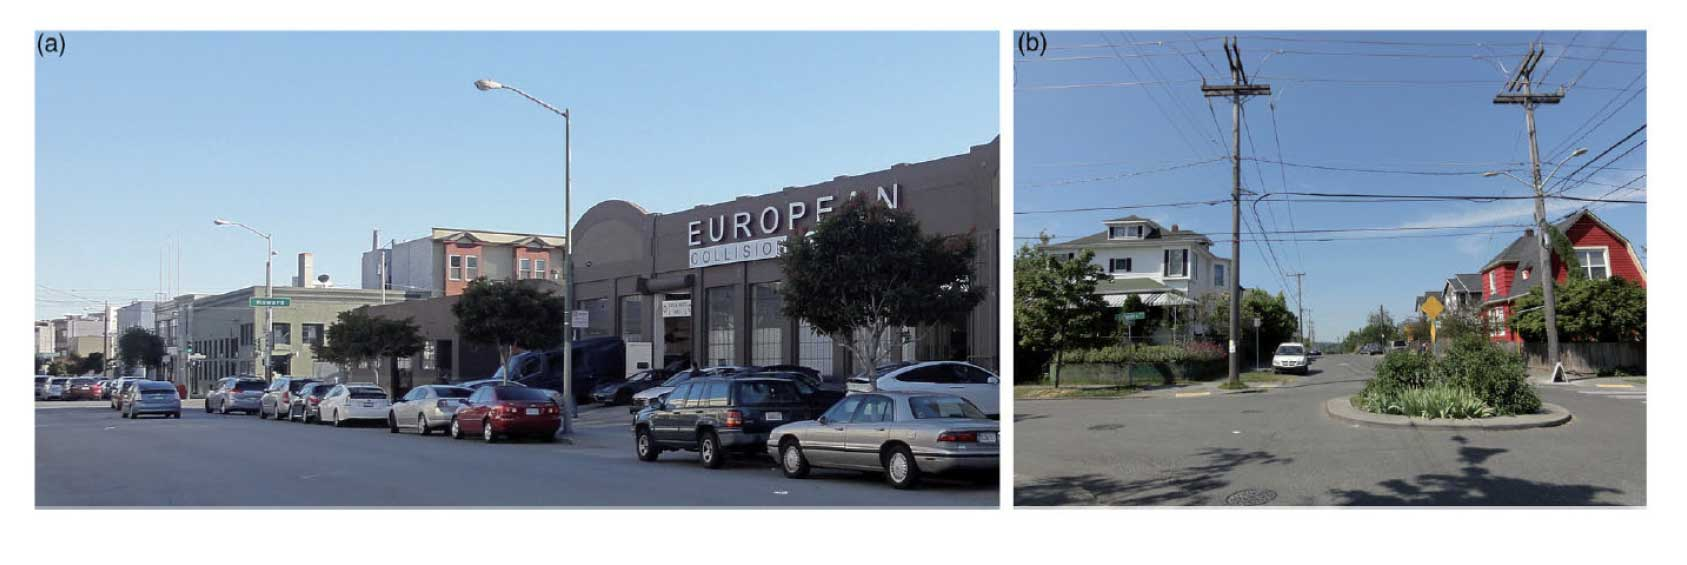 Figure 3.The plan boundary runs through the middle of these photos in San Francisco (left) and Seattle (right). In the SF photo, the buildings in the foreground are in the plan area; those in the background (the green building and beyond) are outside but the light industrial character is the same. In the Seattle photo, the house on the left is in the overlay zone, but the house on the right is not